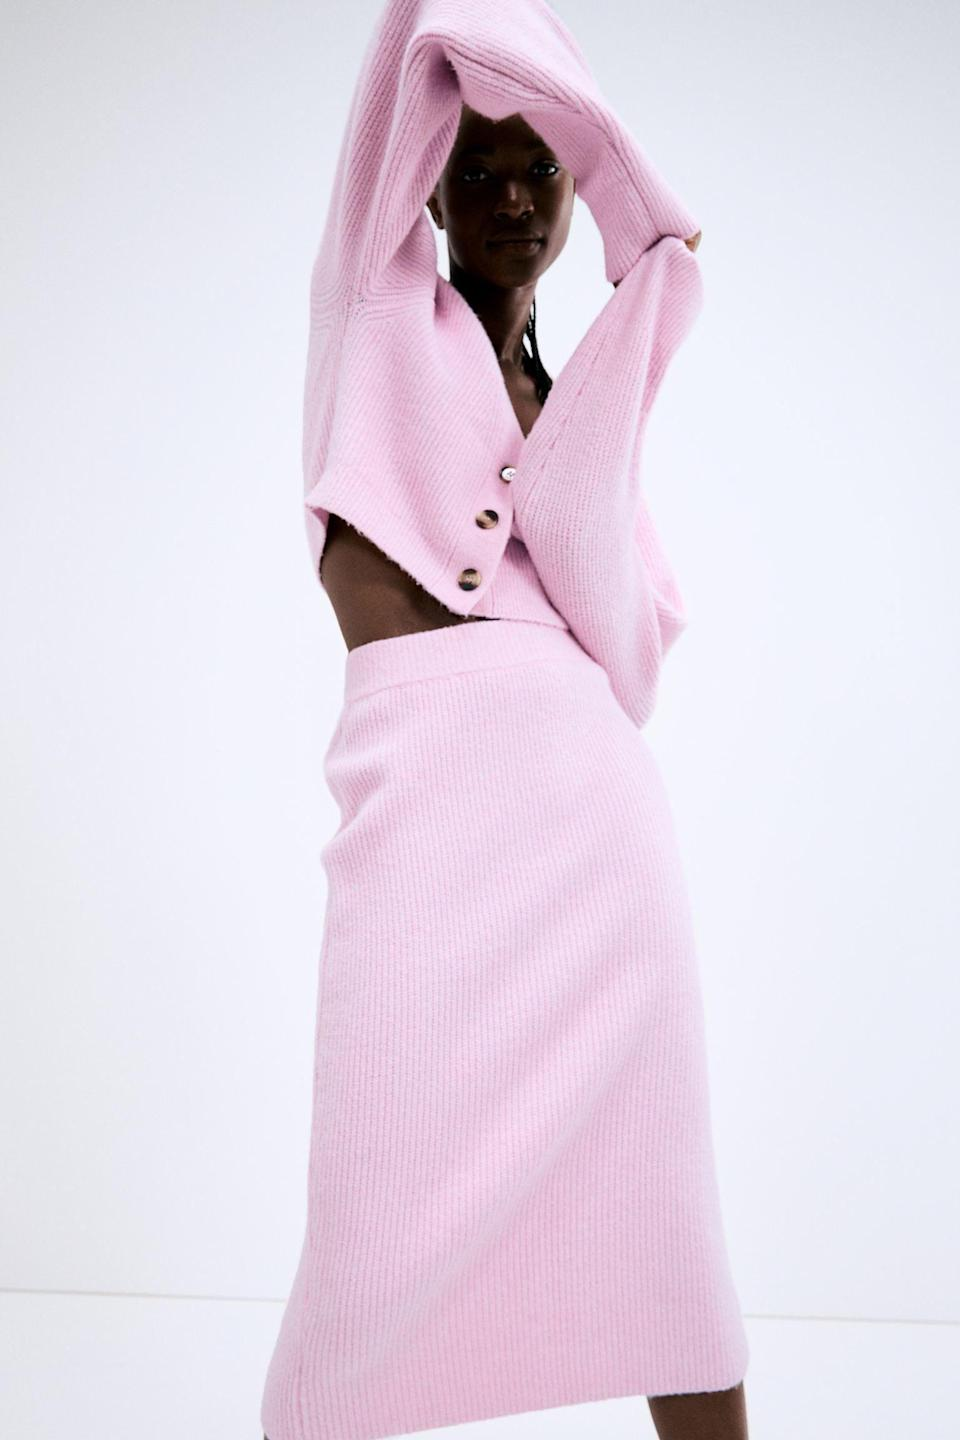 <p>Style this <span>Ribbed Pencil Skirt</span> ($30) with its matching pink skirt for a striking monochrome moment, or pair it with fitted leather jeans. It will become best friends with all your bottoms.</p>